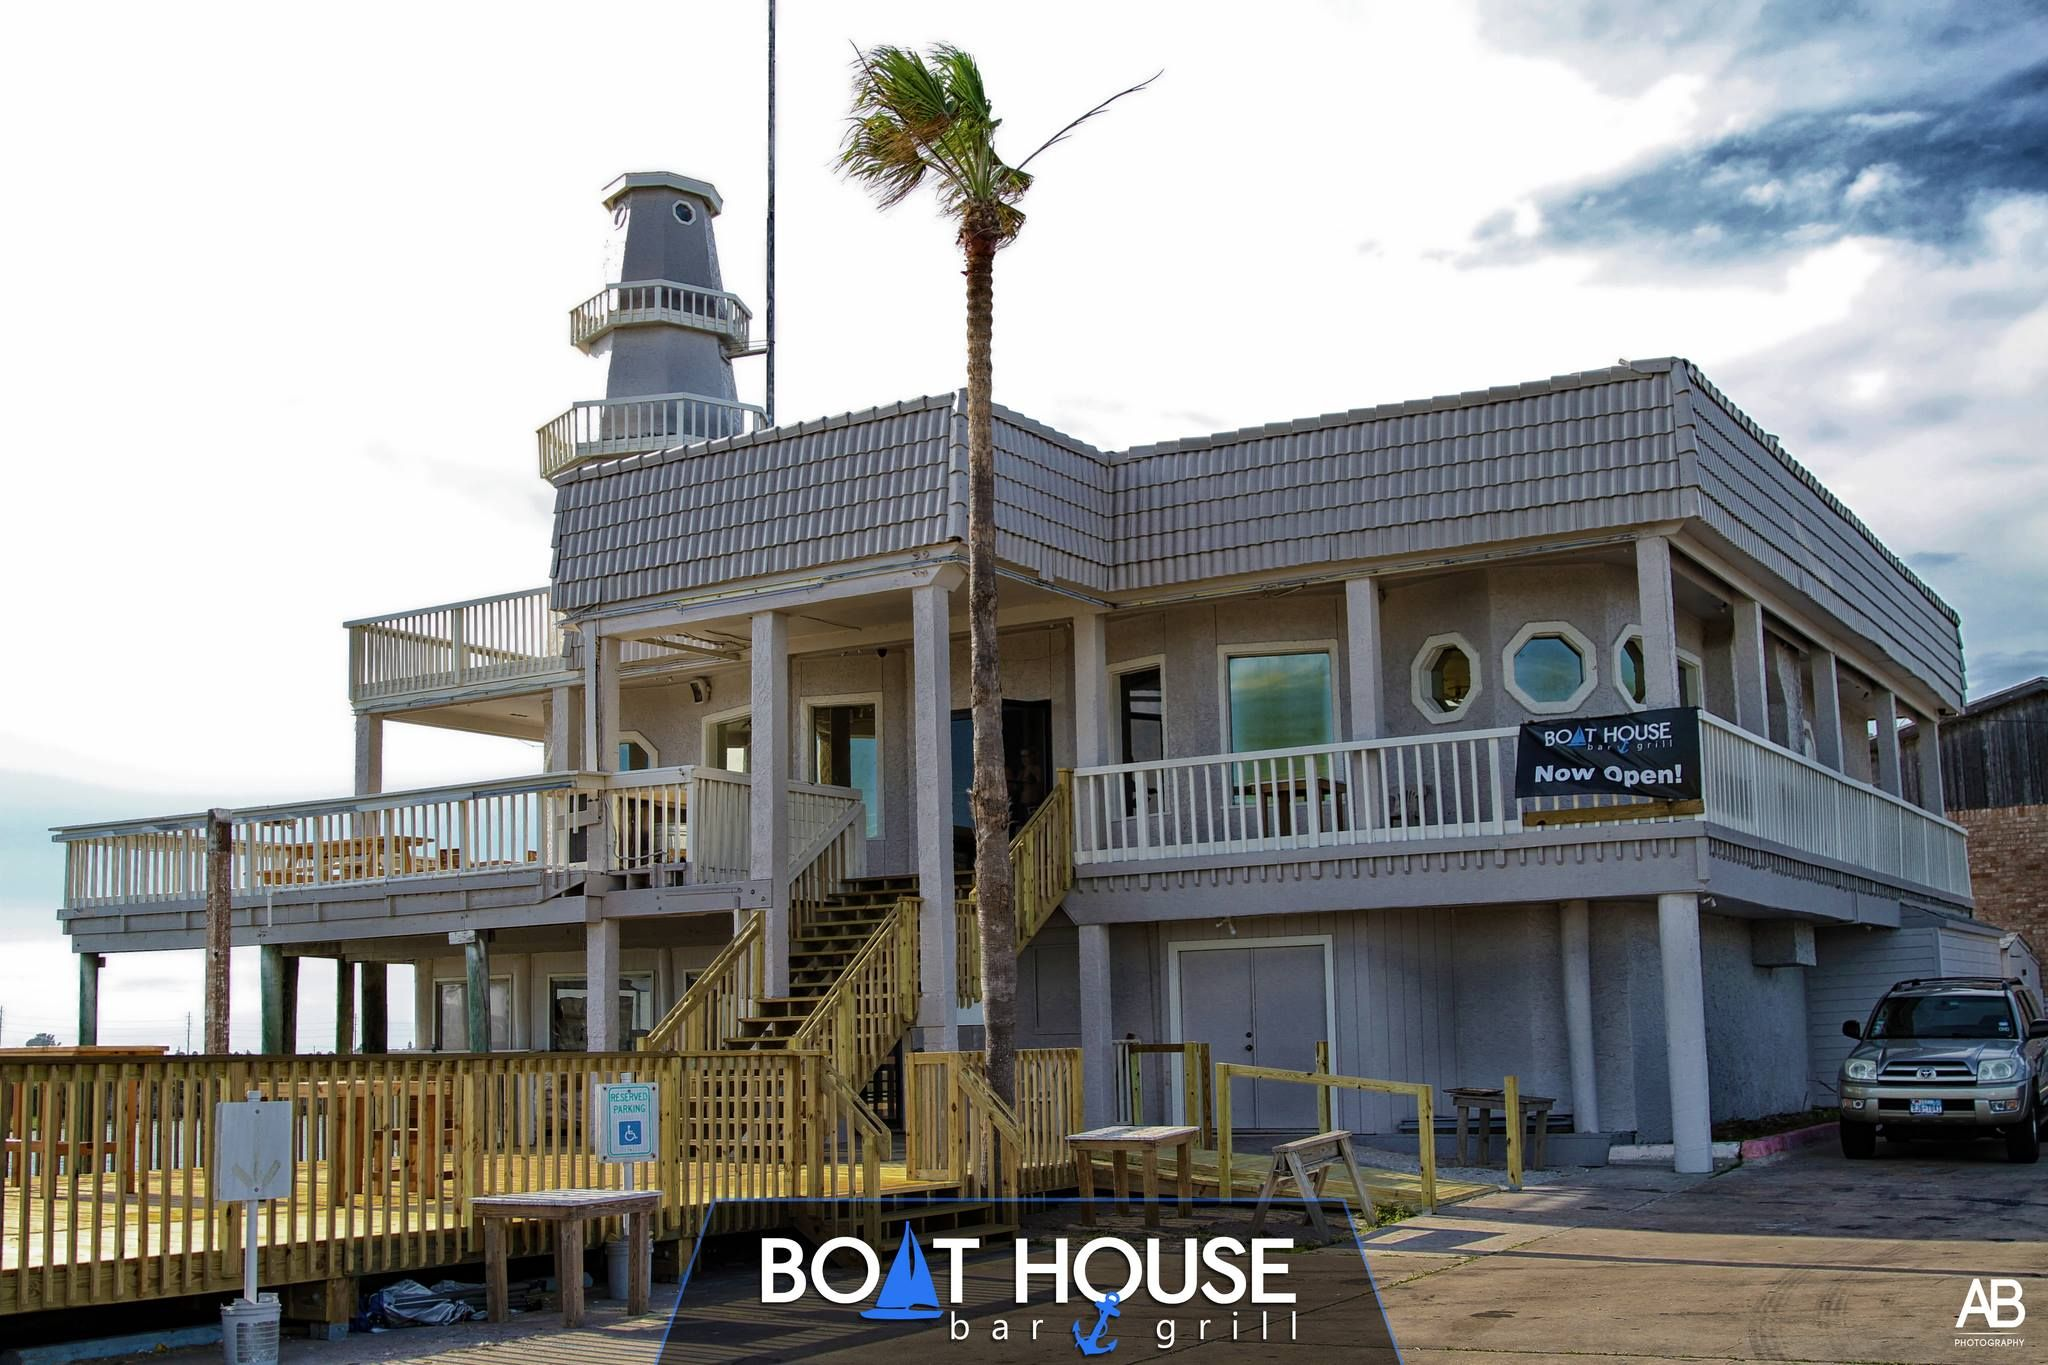 Boathouse bar grill in north padre island is the place